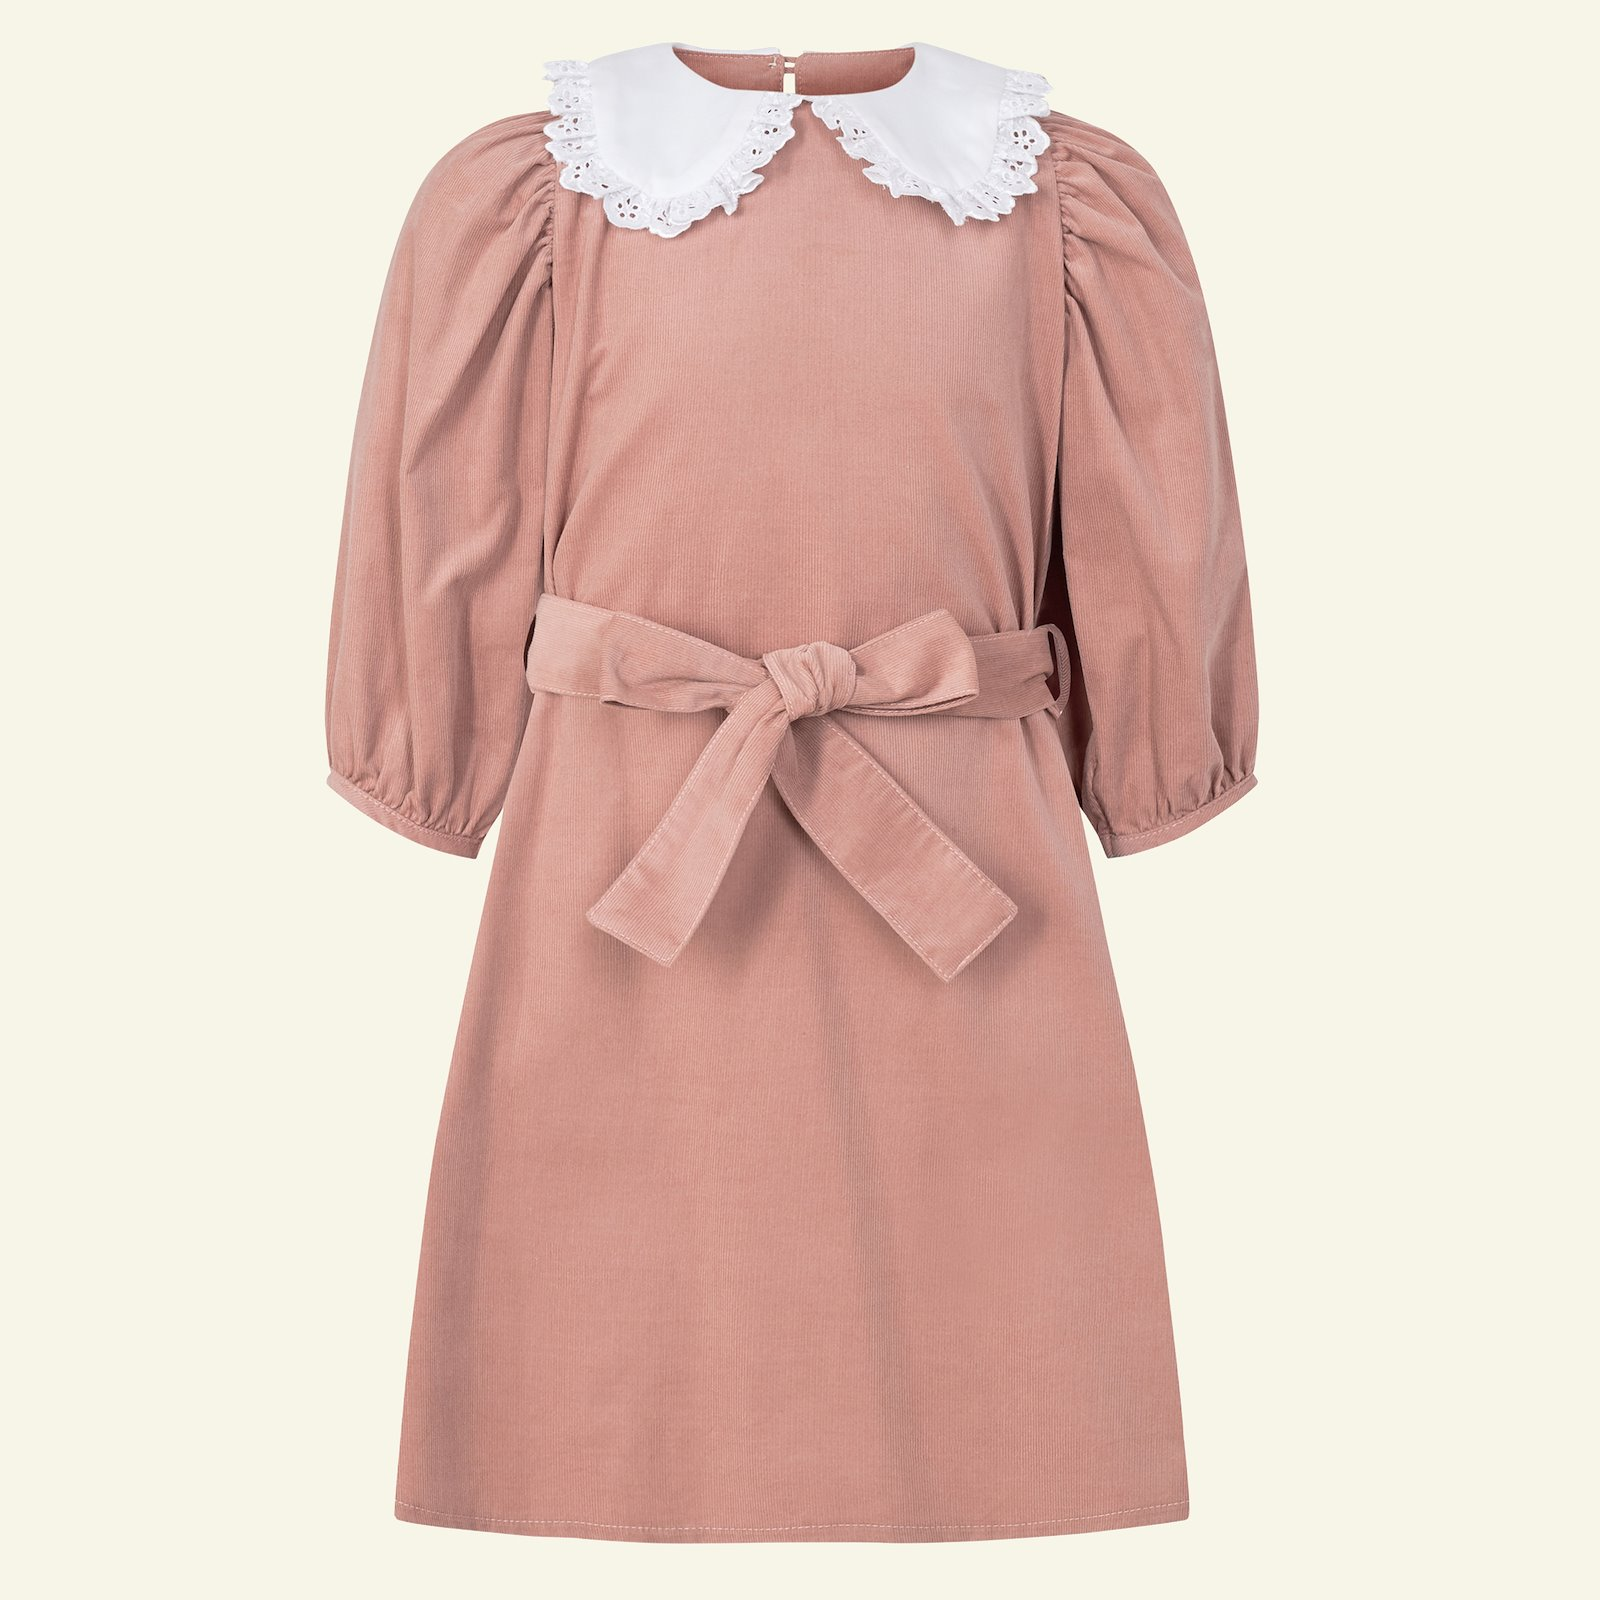 Dress and Blouse with puff sleev, 122/7y p63065_430231_815529_20060_sskit